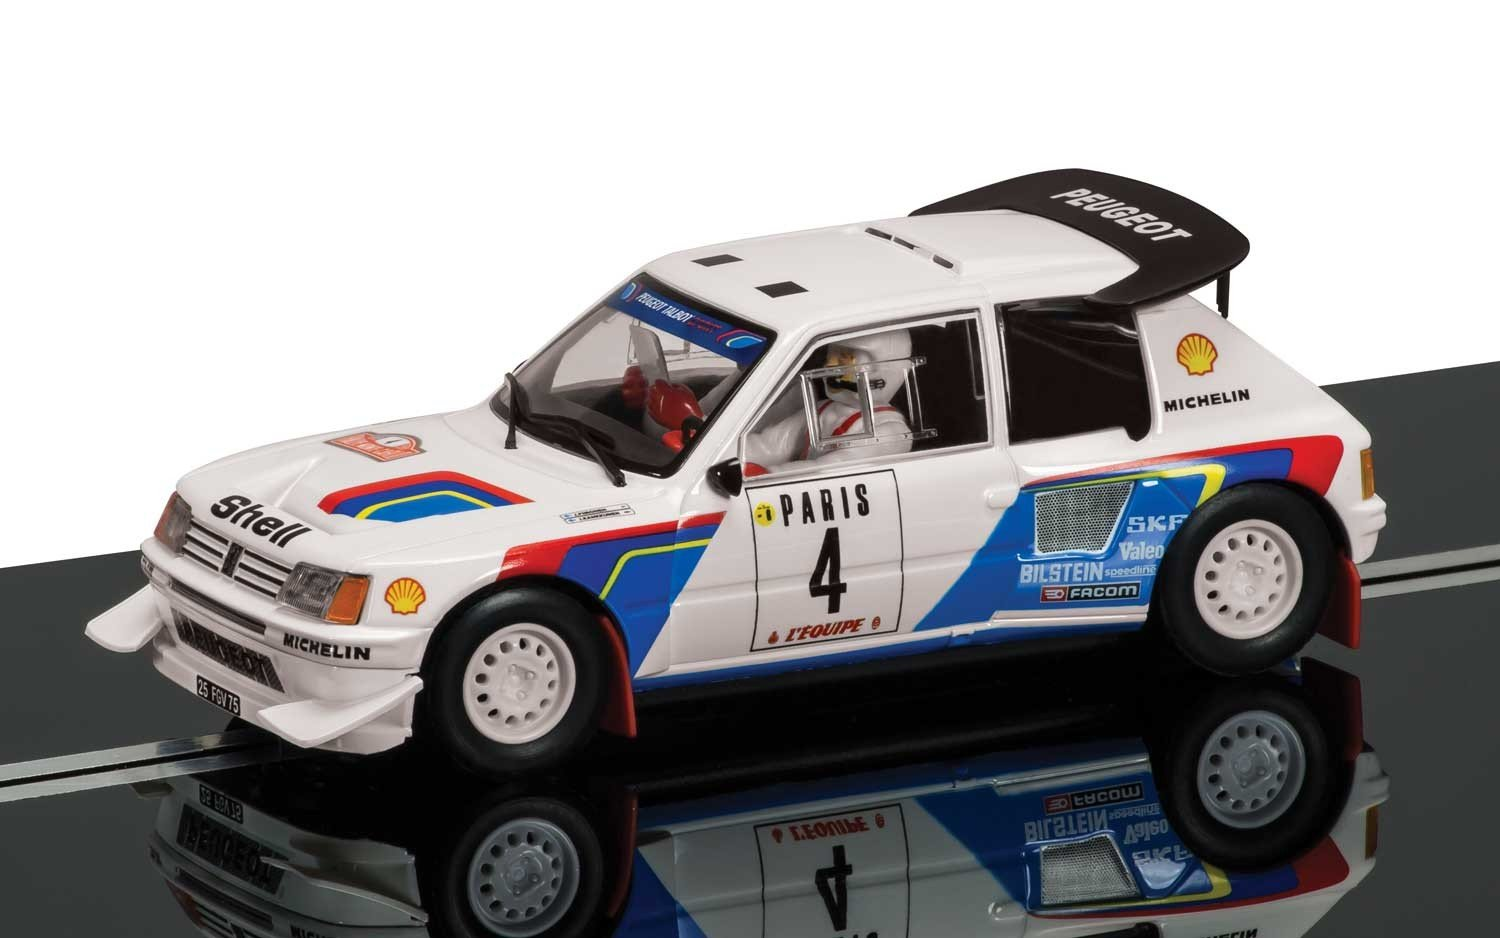 Amazon.com: Scalextric Classic Collection Peugeot 205 T16 & MG Metro 6R4 Twin-Pack Slot Car (1:32 Scale): Toys & Games